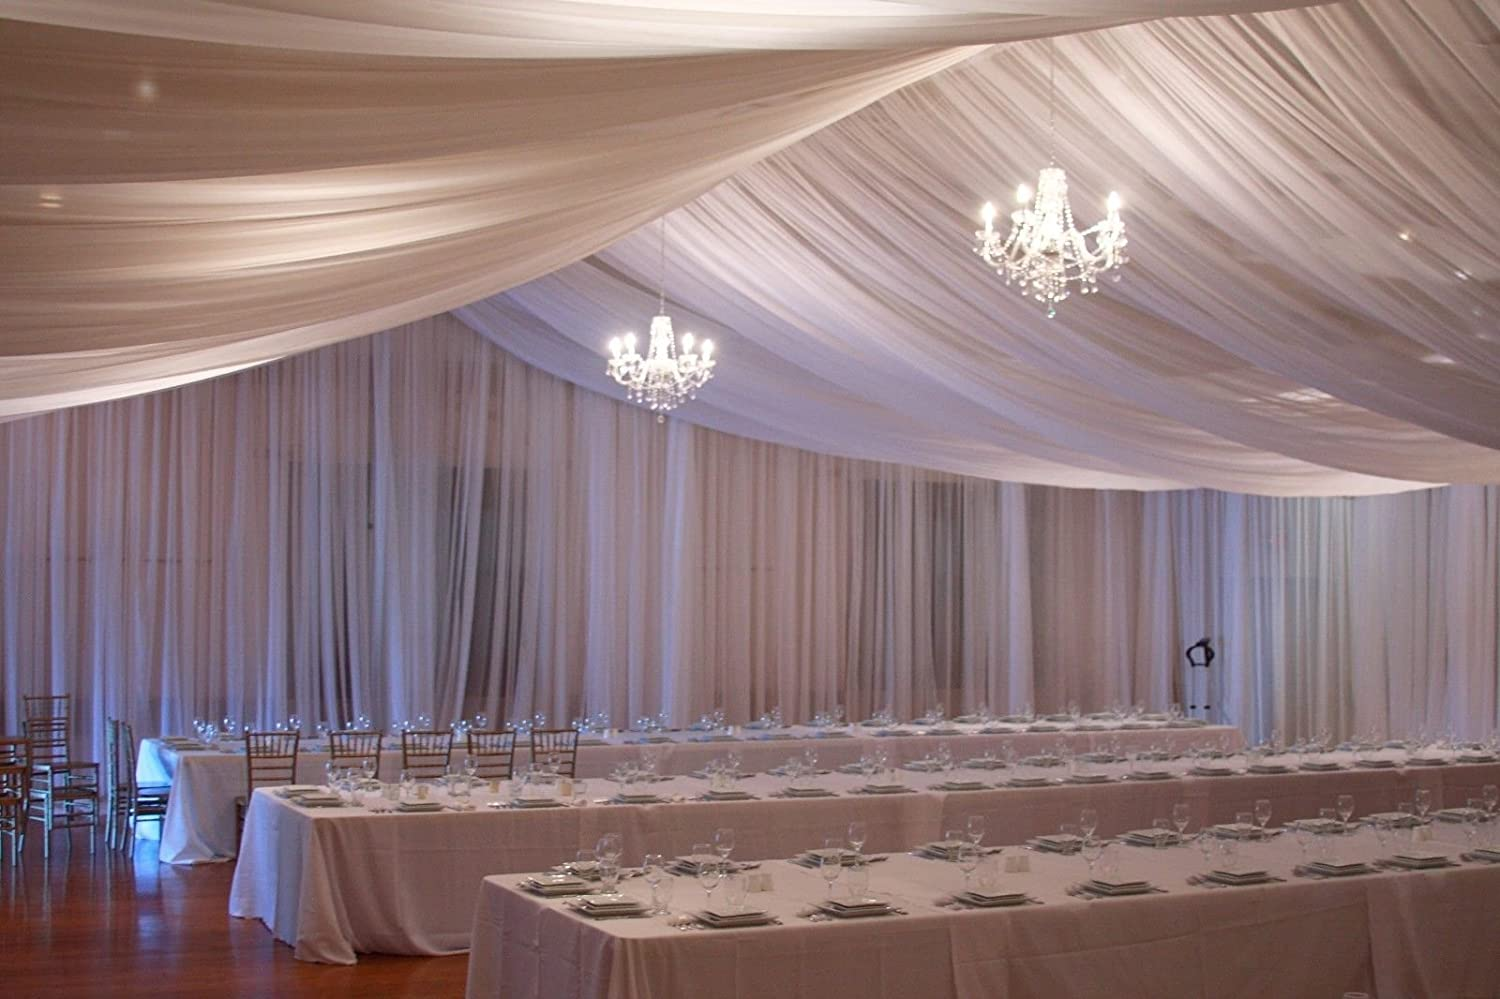 Amazon Com Ceiling Draping Ivory Sheer Ceiling Curtain Voile Chiffon Ceiling Drape 10 Ft W X 12 Ft H Panel Wedding,How To Arrange Flowers With Floral Foam